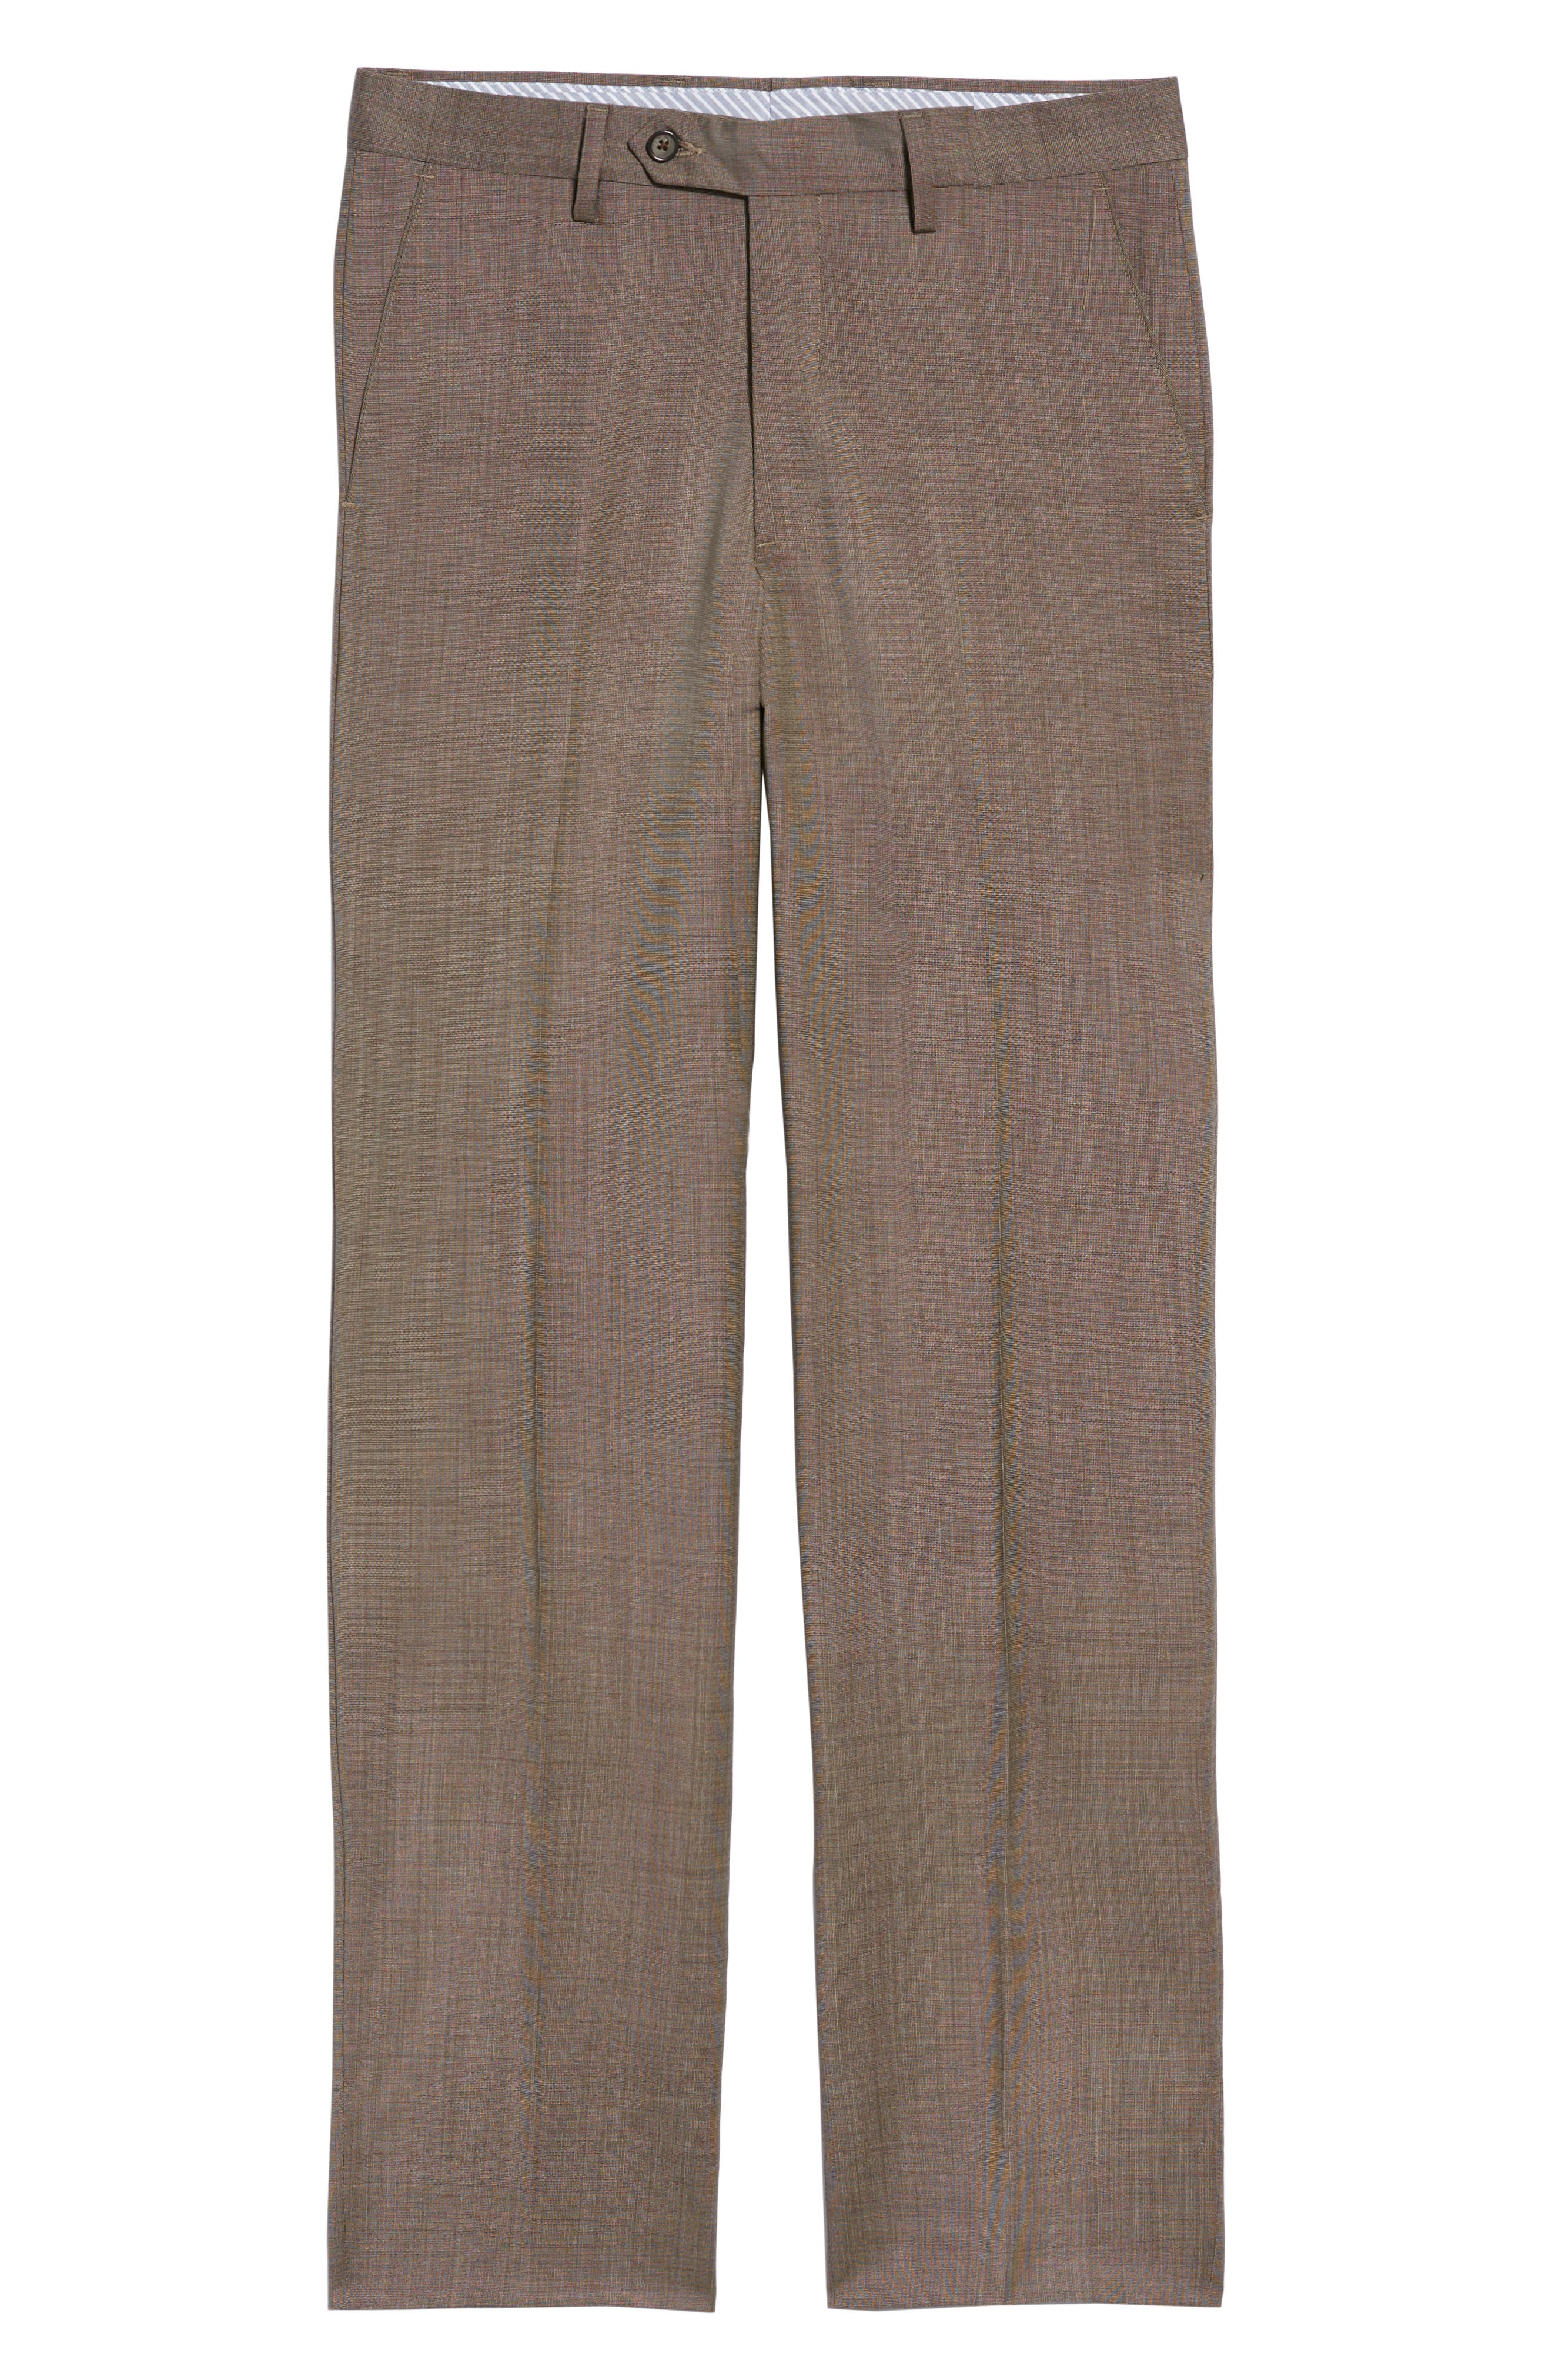 Manufacturing Flat Front Wool Trousers,                             Alternate thumbnail 6, color,                             BROWN